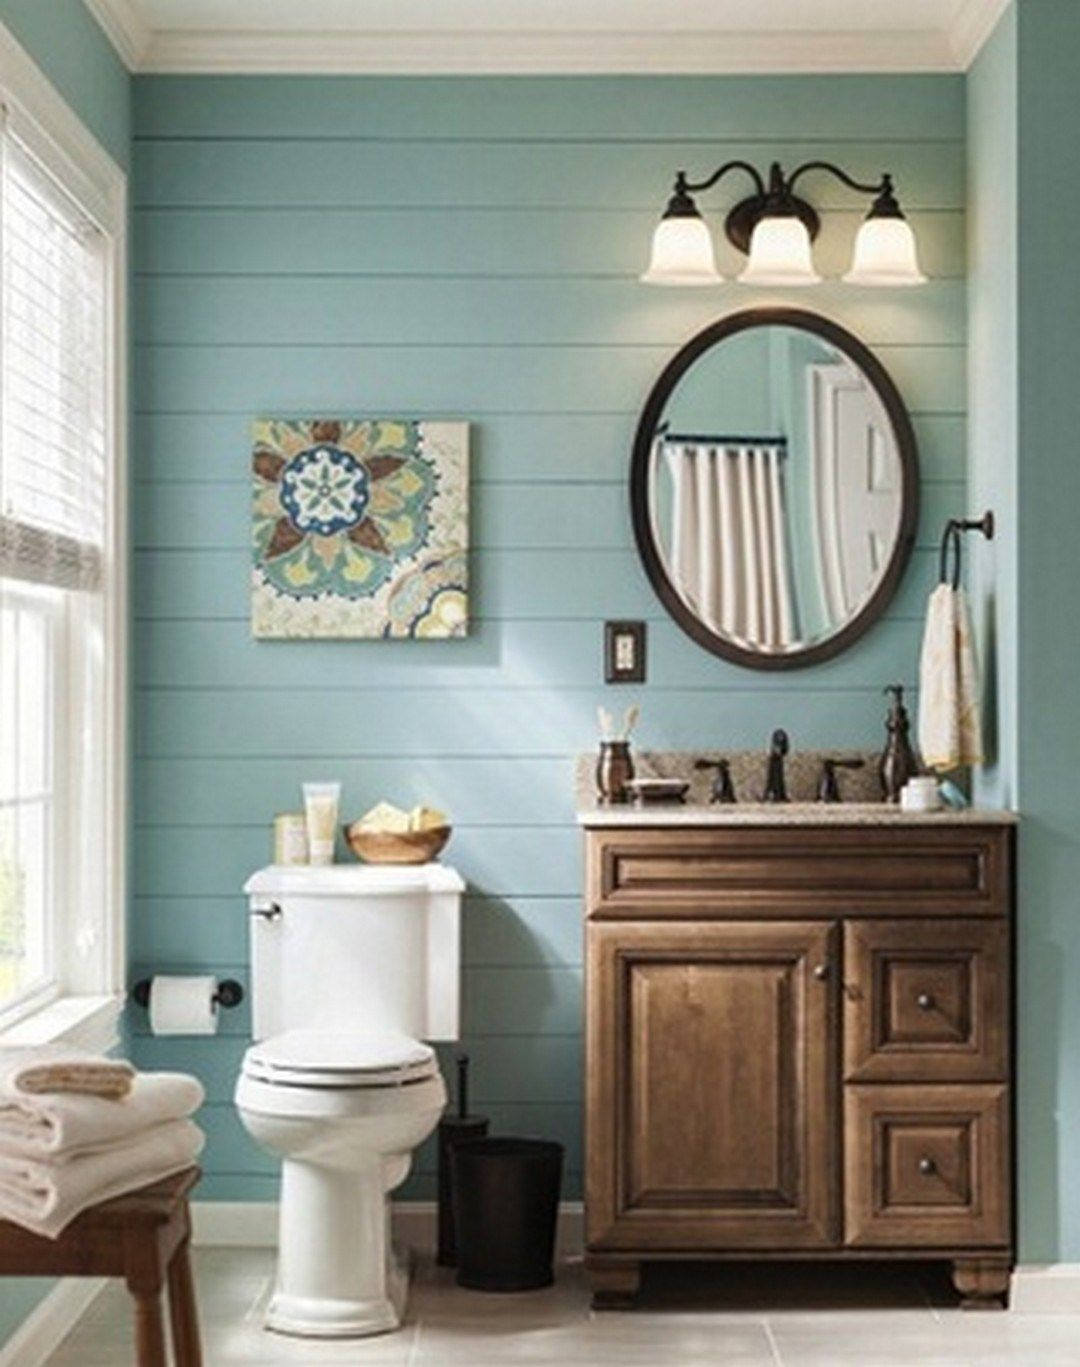 50 Amazing Small Bathroom Remodel Ideas | House ideas | Pinterest ...